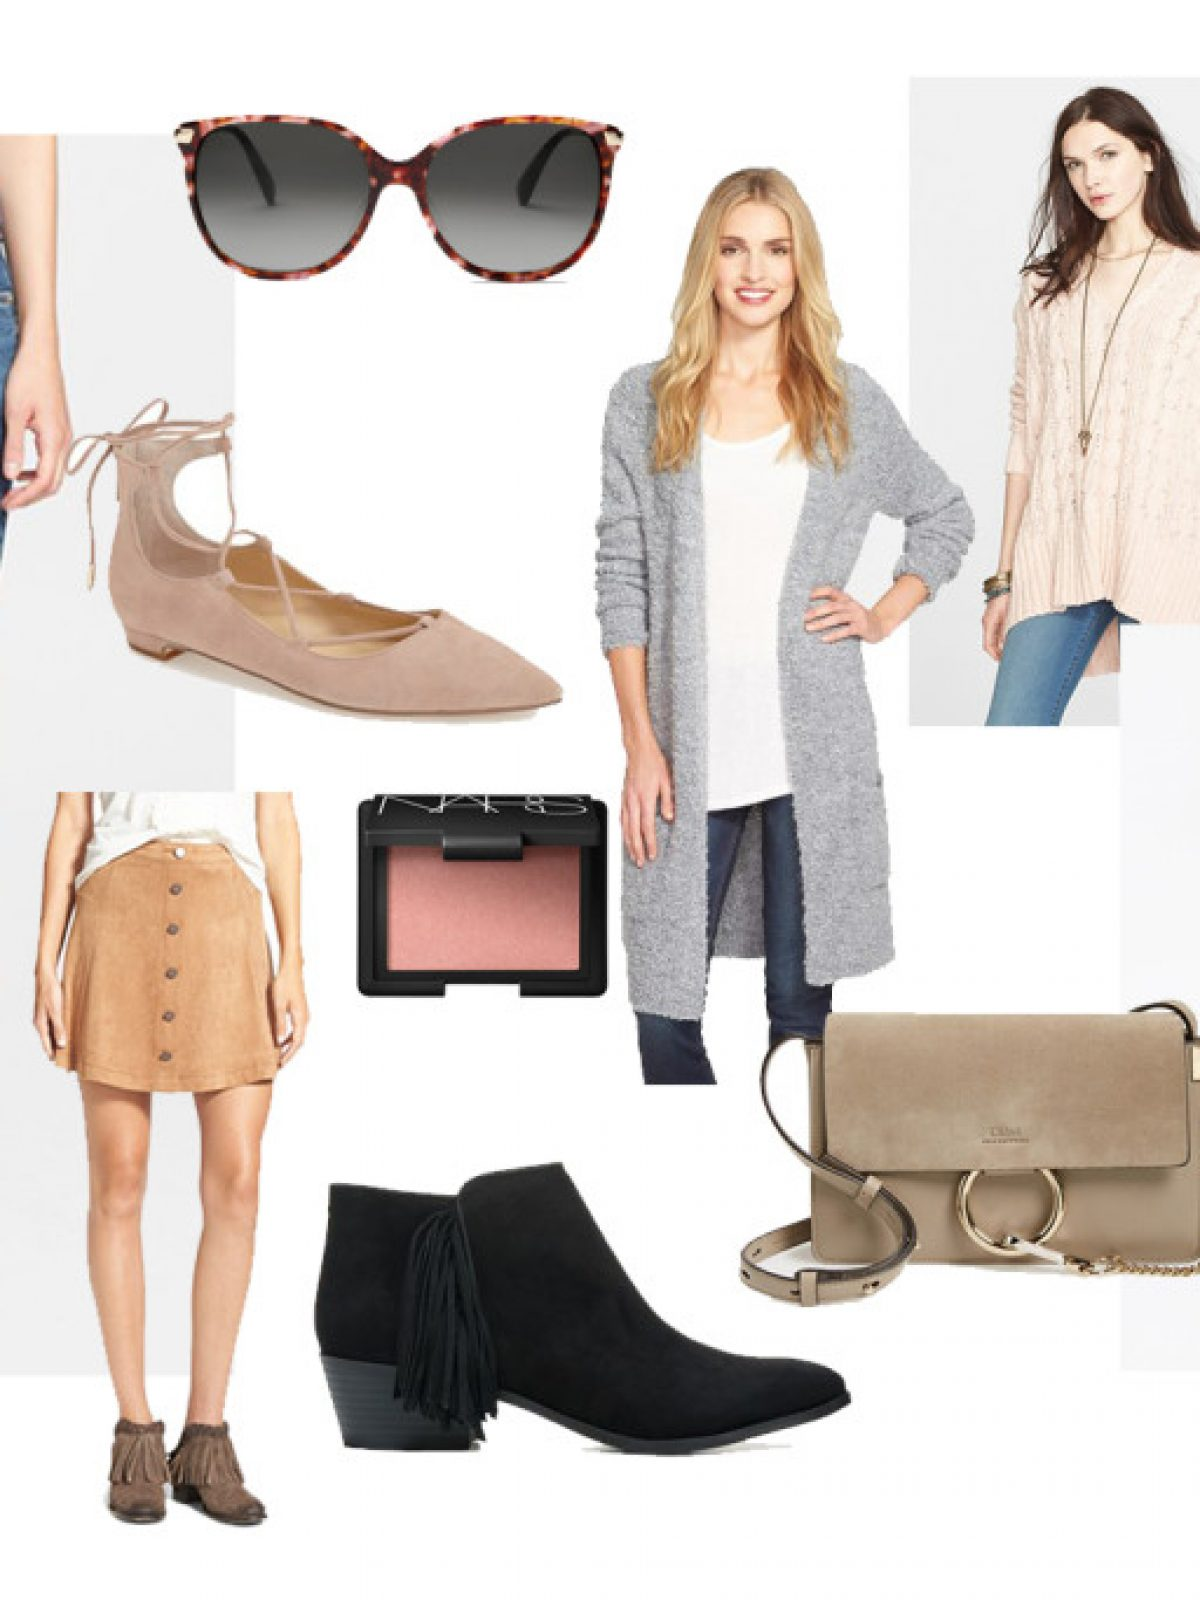 spring shopping list, ripped skinny jeans, grey sweater, trench coat, strappy ballet flats, chloe crossbody bag, tortoiseshell sunglesses, dusty rose lipstick, rose quartz lipstick, nars orgasm blush, faux suede skirt